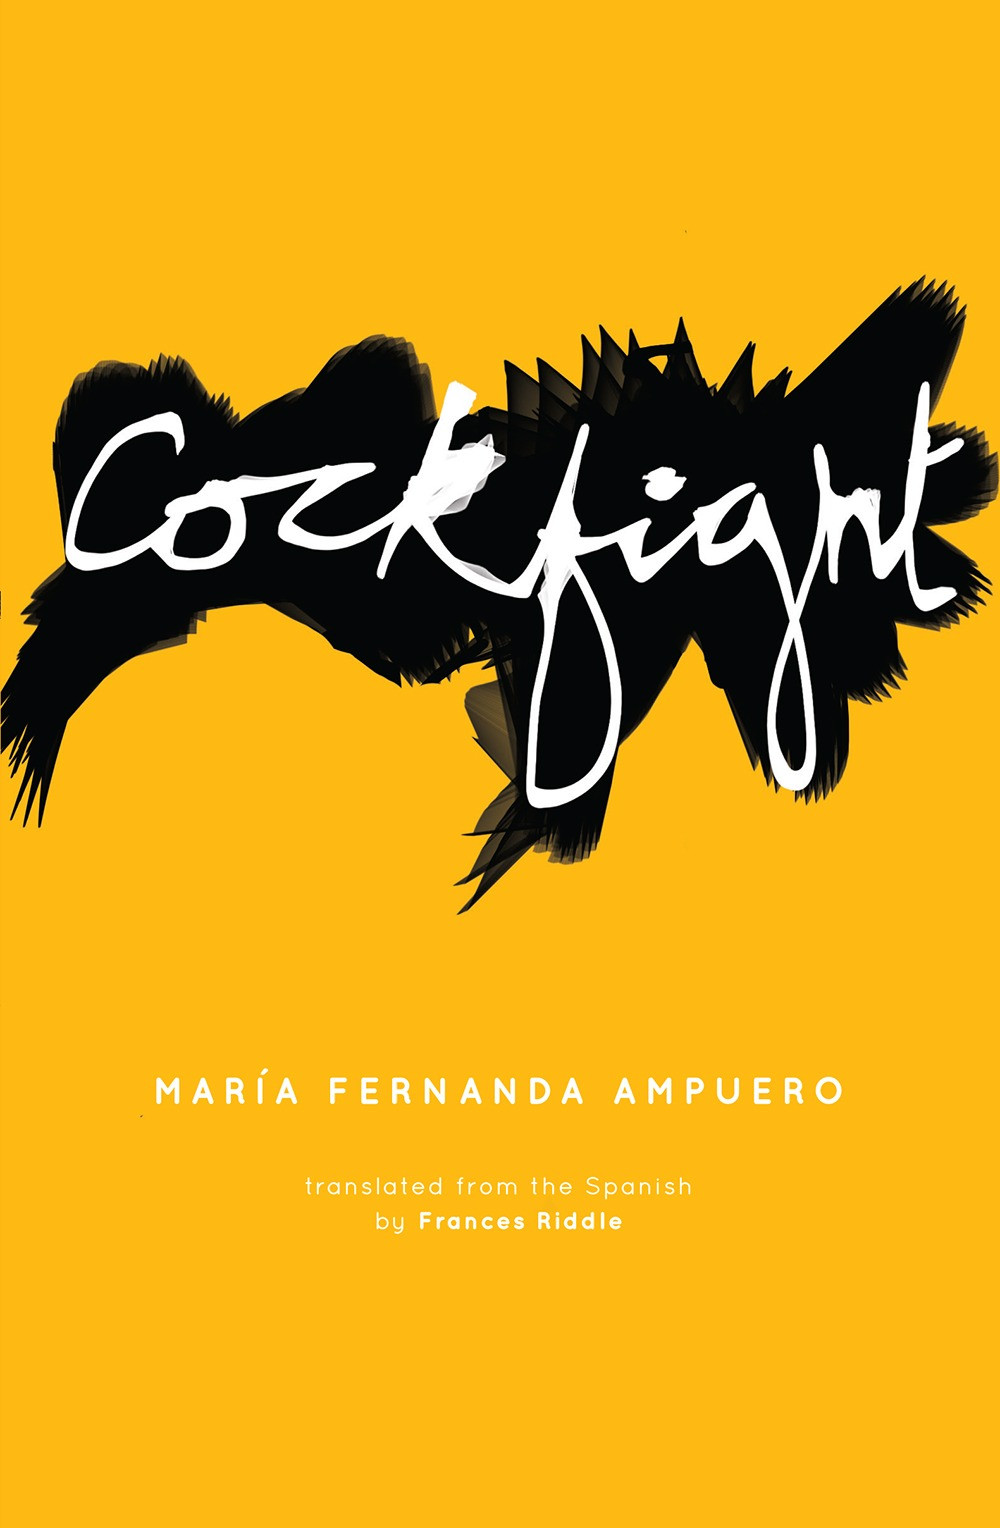 Cockfight by María Fernanda Ampuero Frances Riddle (Translator) thebookslut Named one of the ten best fiction books of 2018 by the New York Times en Español, Cockfight is the debut work by Ecuadorian writer and journalist María Fernanda Ampuero. In lucid and compelling prose, Ampuero sheds light on the hidden aspects of home: the grotesque realities of family, coming of age, religion, and class struggle. A family's maids witness a horrible cycle of abuse, a girl is auctioned off by a gang of criminals, and two sisters find themselves at the mercy of their spiteful brother. With violence masquerading as love, characters spend their lives trapped reenacting their past traumas. Heralding a brutal and singular new voice, Cockfight explores the power of the home to both create and destroy those within it. Product Details Price: $15.95  $14.67 Publisher: Feminist Press Published Date: May 05, 2020 Pages: 128 Dimensions: 5.2 X 0.5 X 7.9 inches | 0.35 pounds Language: English Type: Paperback ISBN: 9781936932825 BISAC Categories: Hispanic & Latino